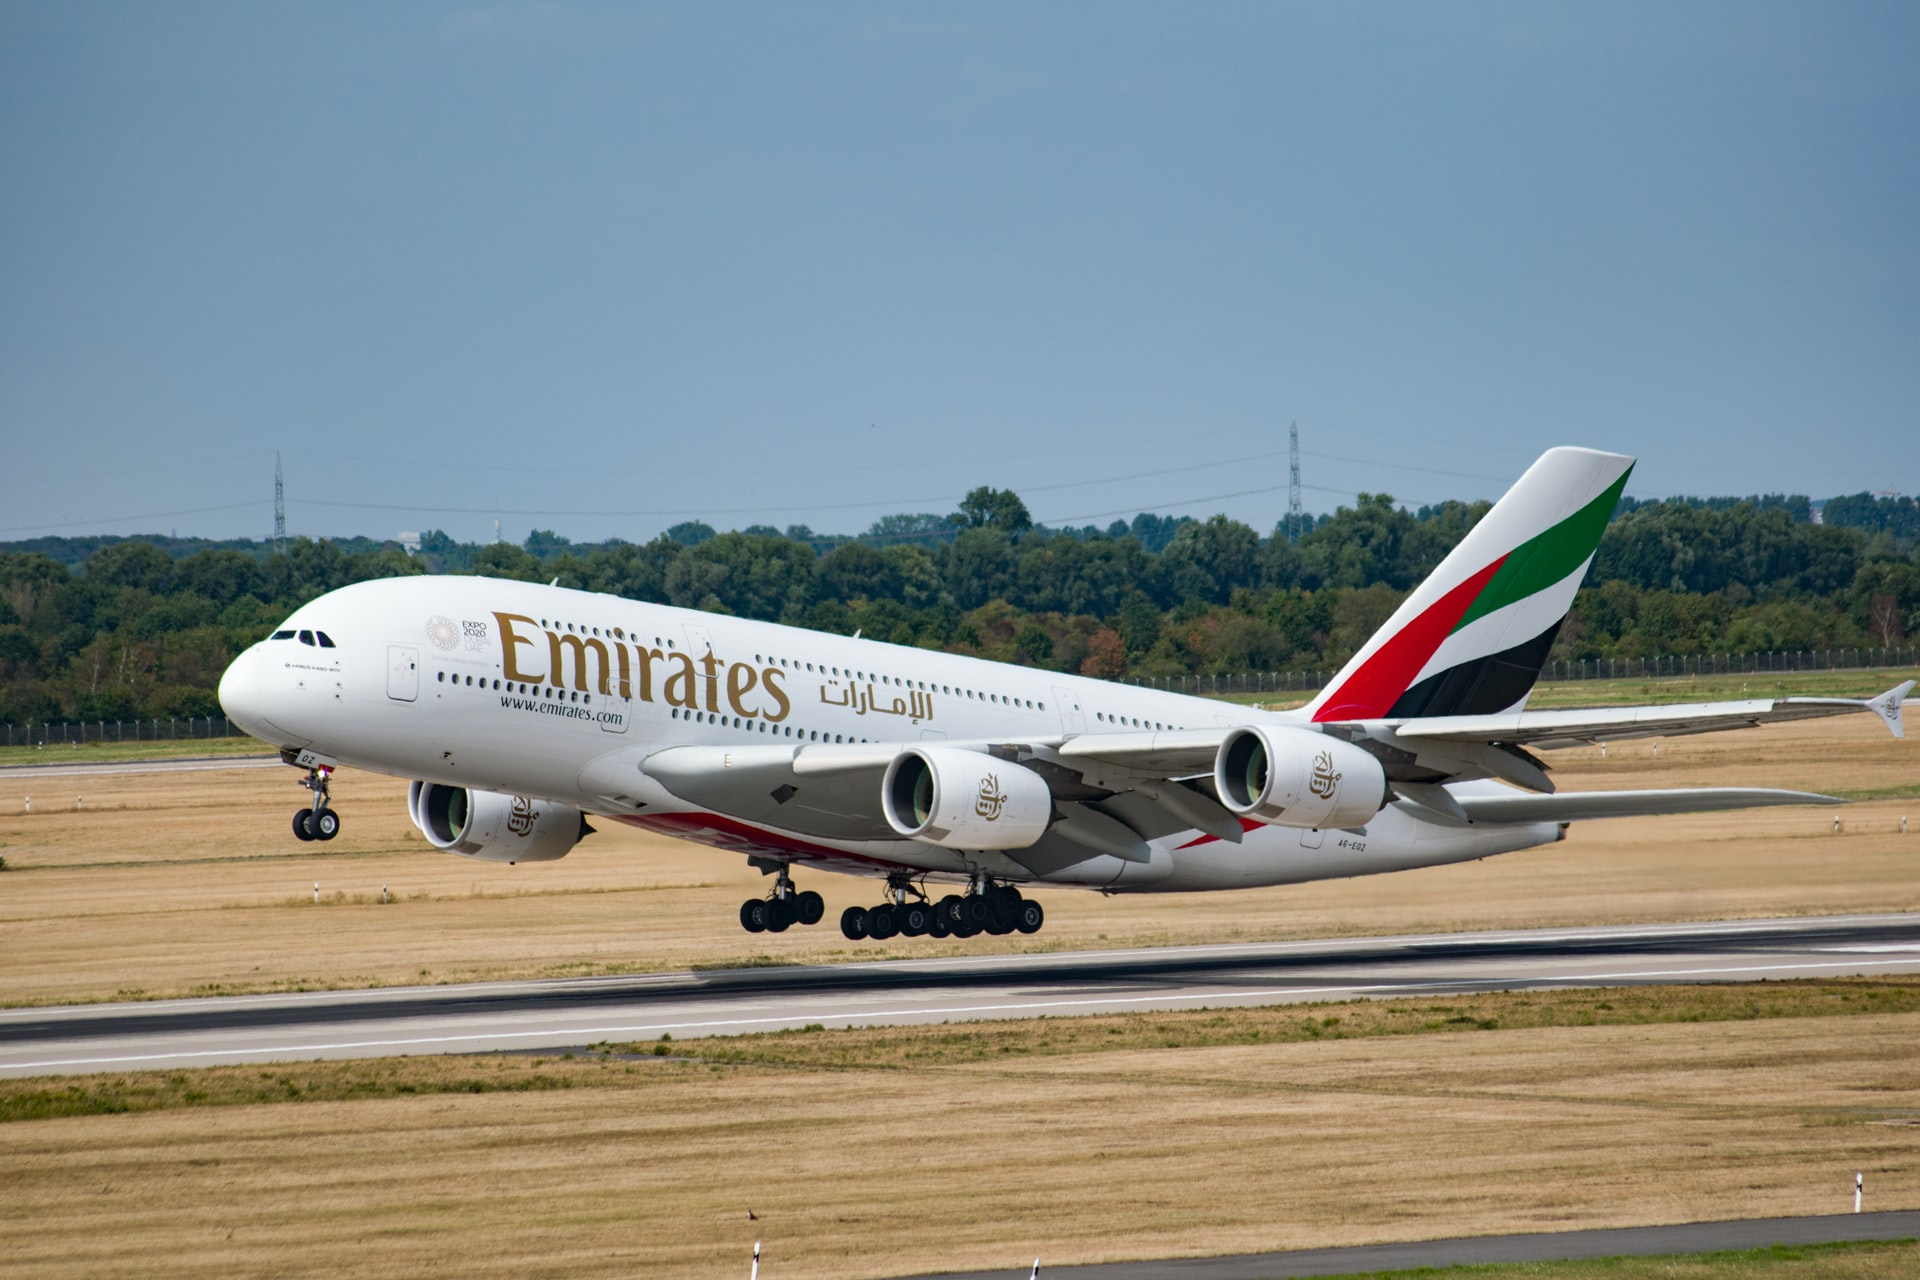 Experience the First Class Aboard an Emirates Flight in Virtual Reality